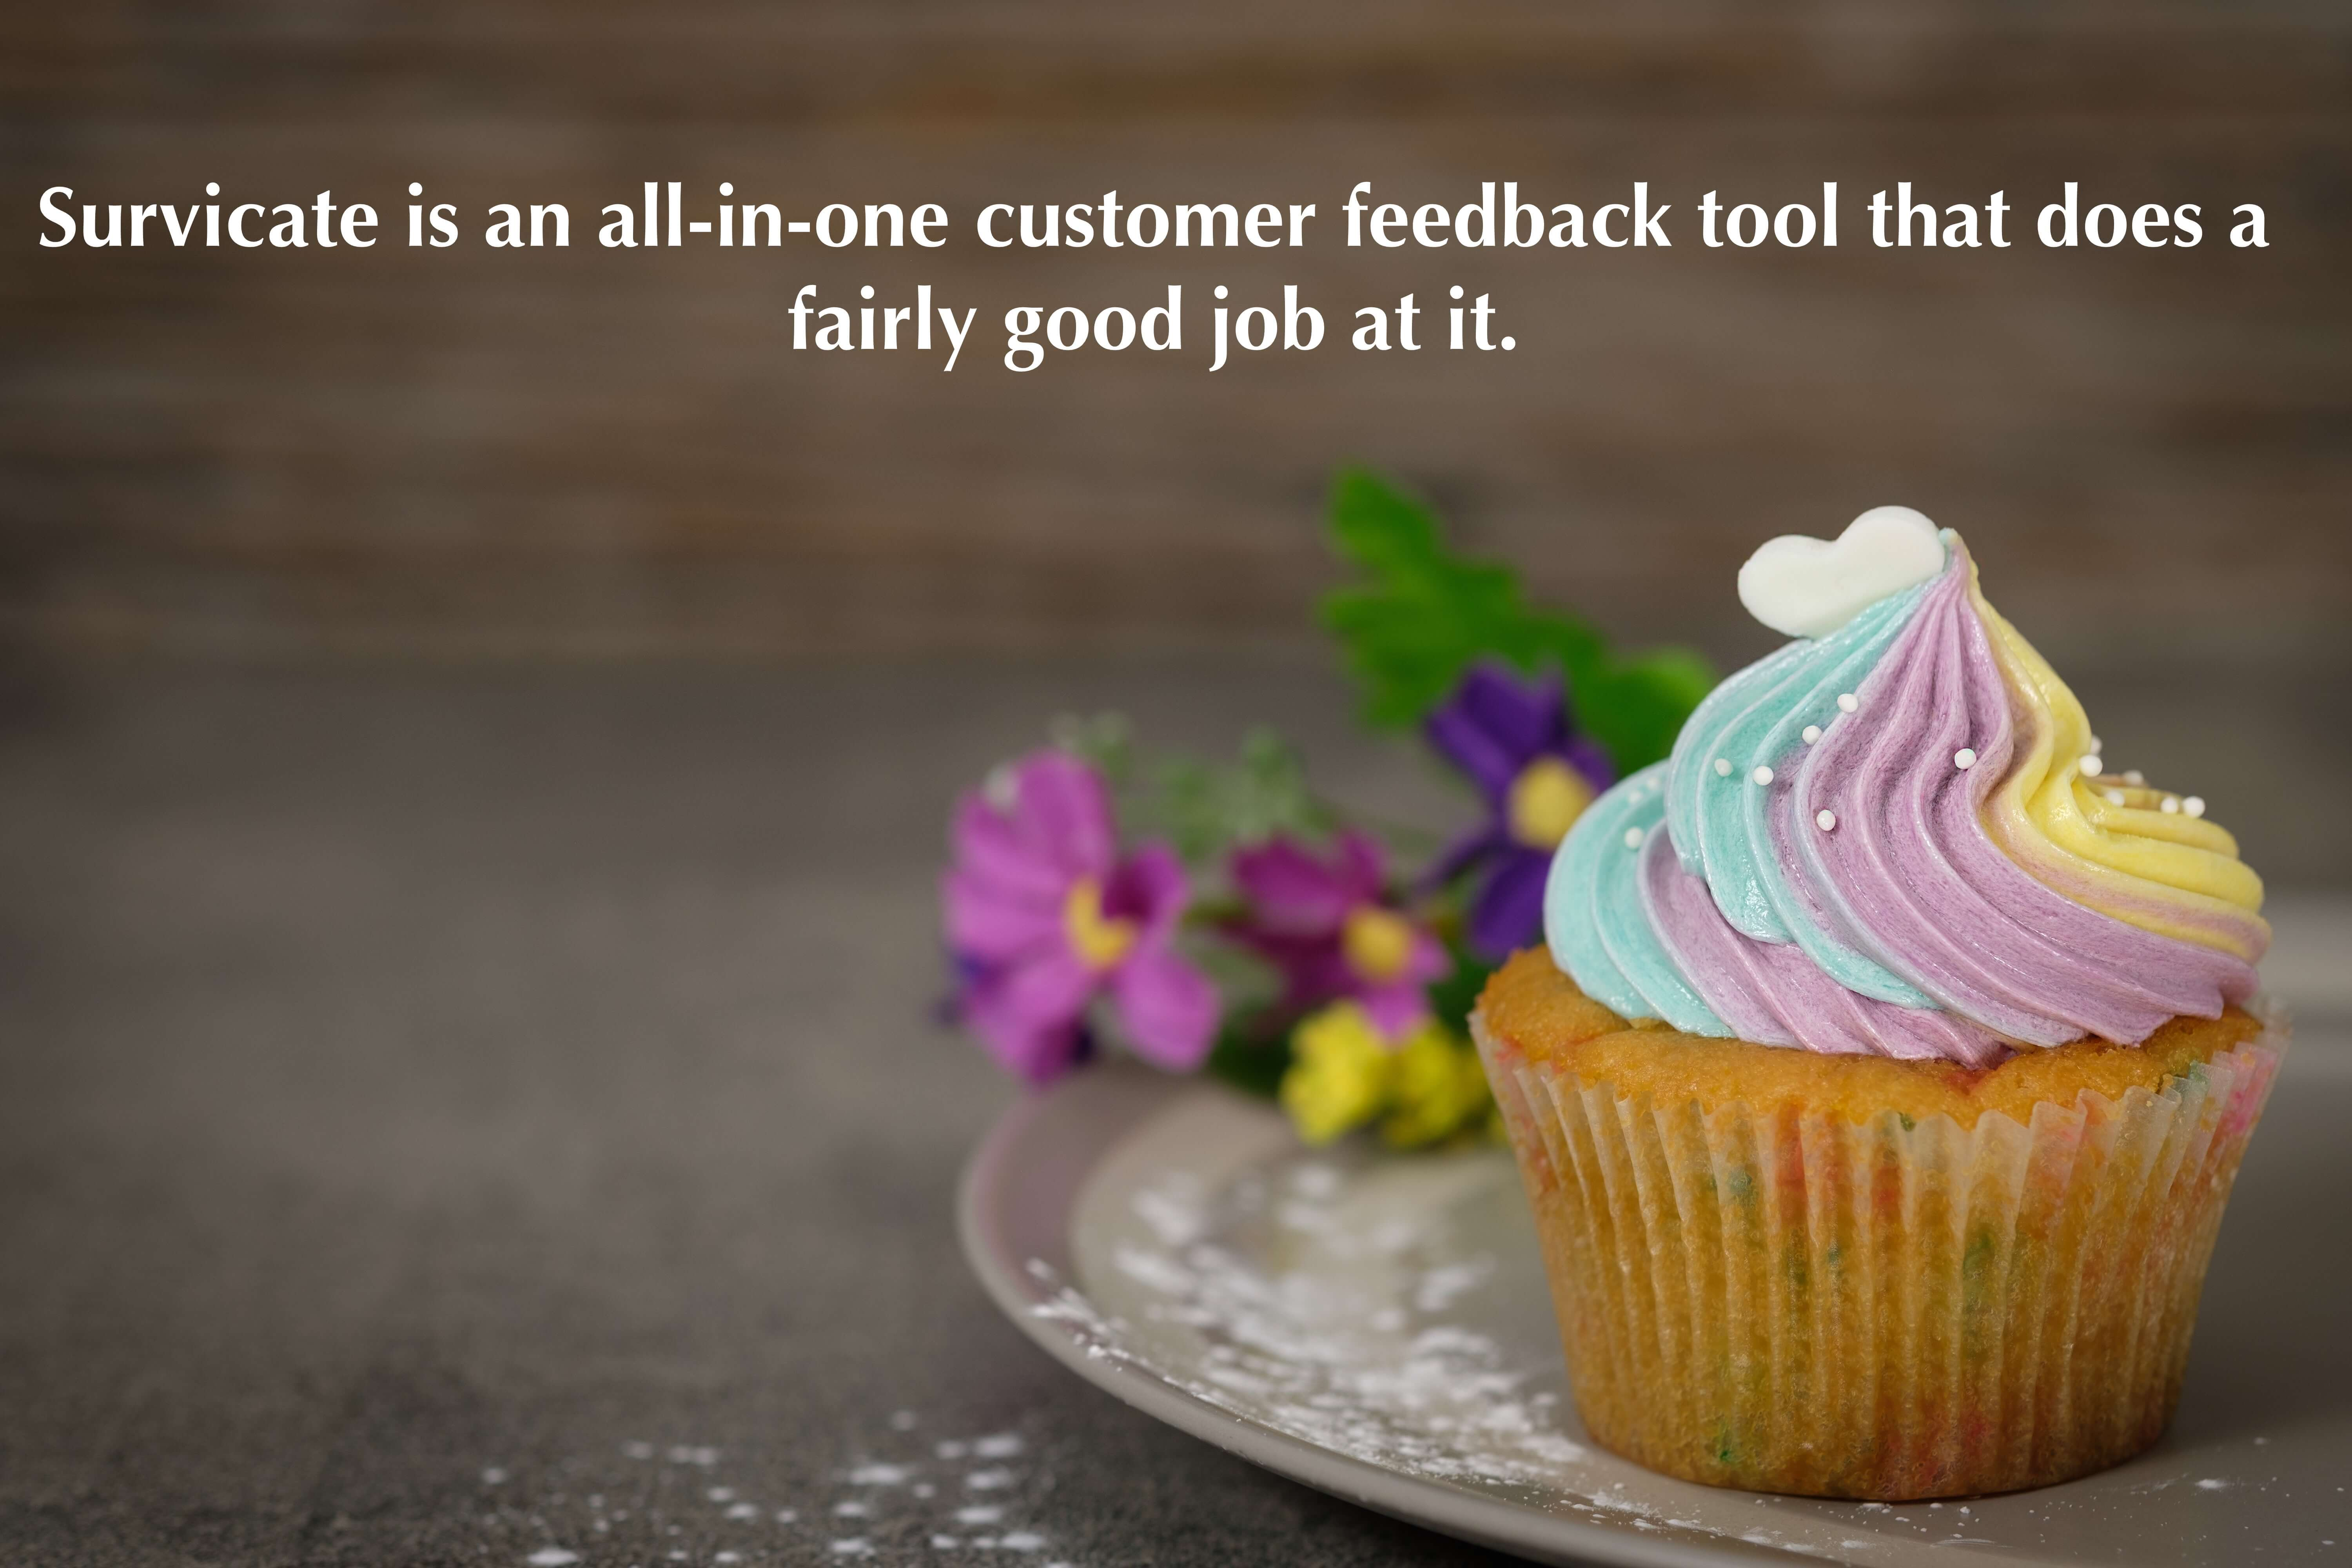 Survicate is an all-in-one customer feedback tool that does a fairly good job at it.